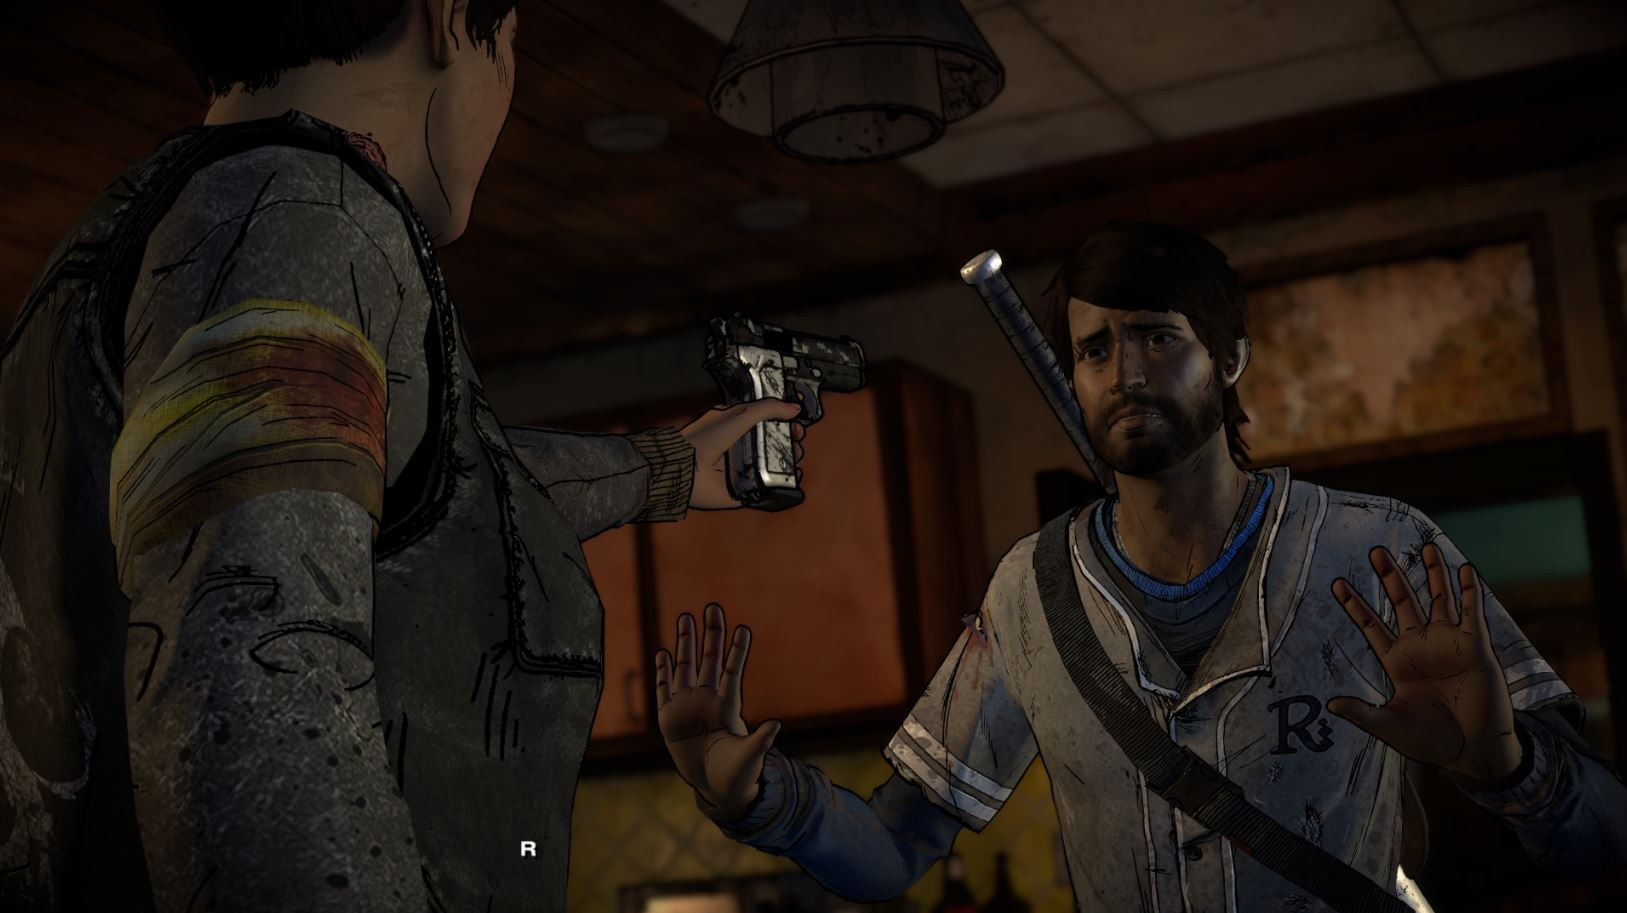 Review: The Walking Dead: The Telltale Series - A New Frontier Episode 5 effectively concludes an uneven season